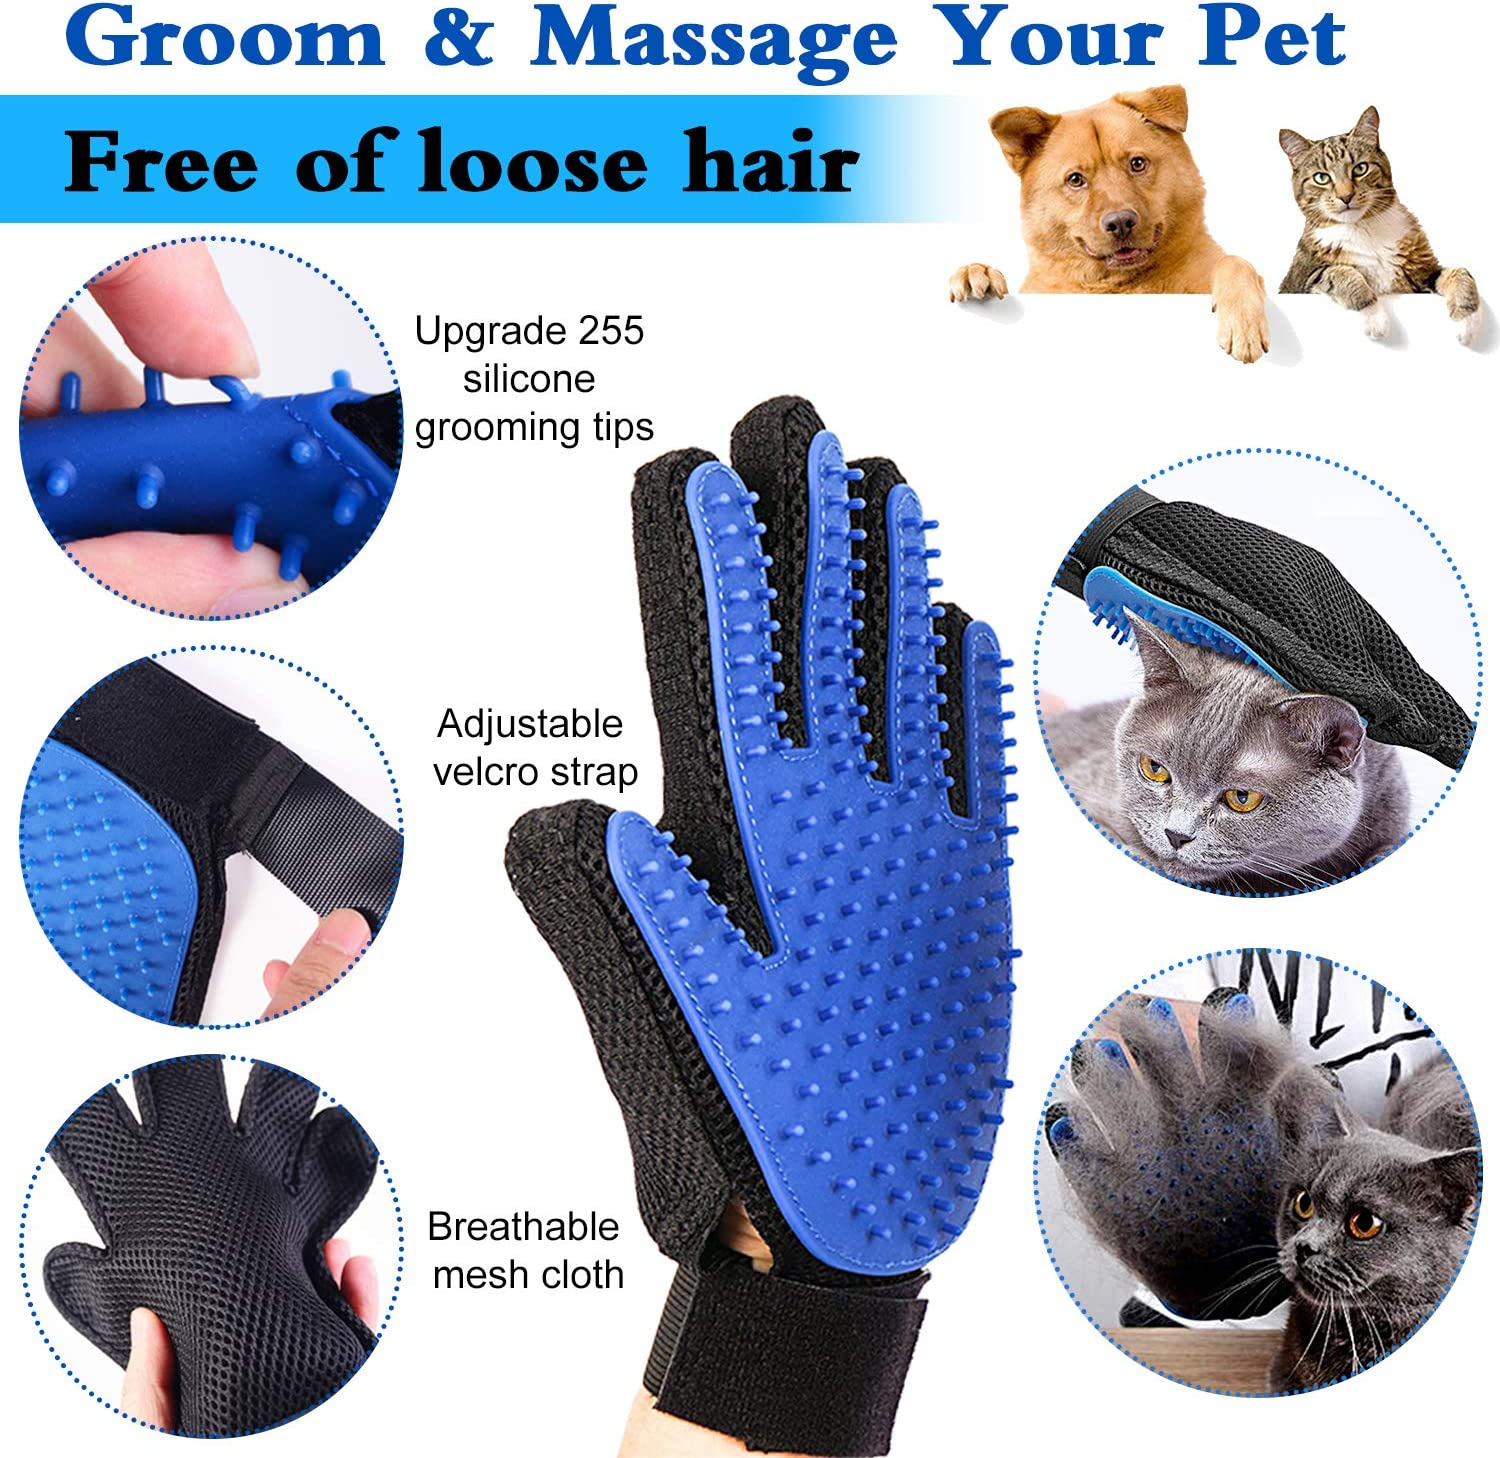 Carpet Upgrade Pet Hair Remover /& Pet Grooming Gloves Kit Efficient Double-Sided Brush with Self-Cleaning Base for Clothing Car Seat Furniture Perfect for Dog /& Cat with Long /& Short Fur